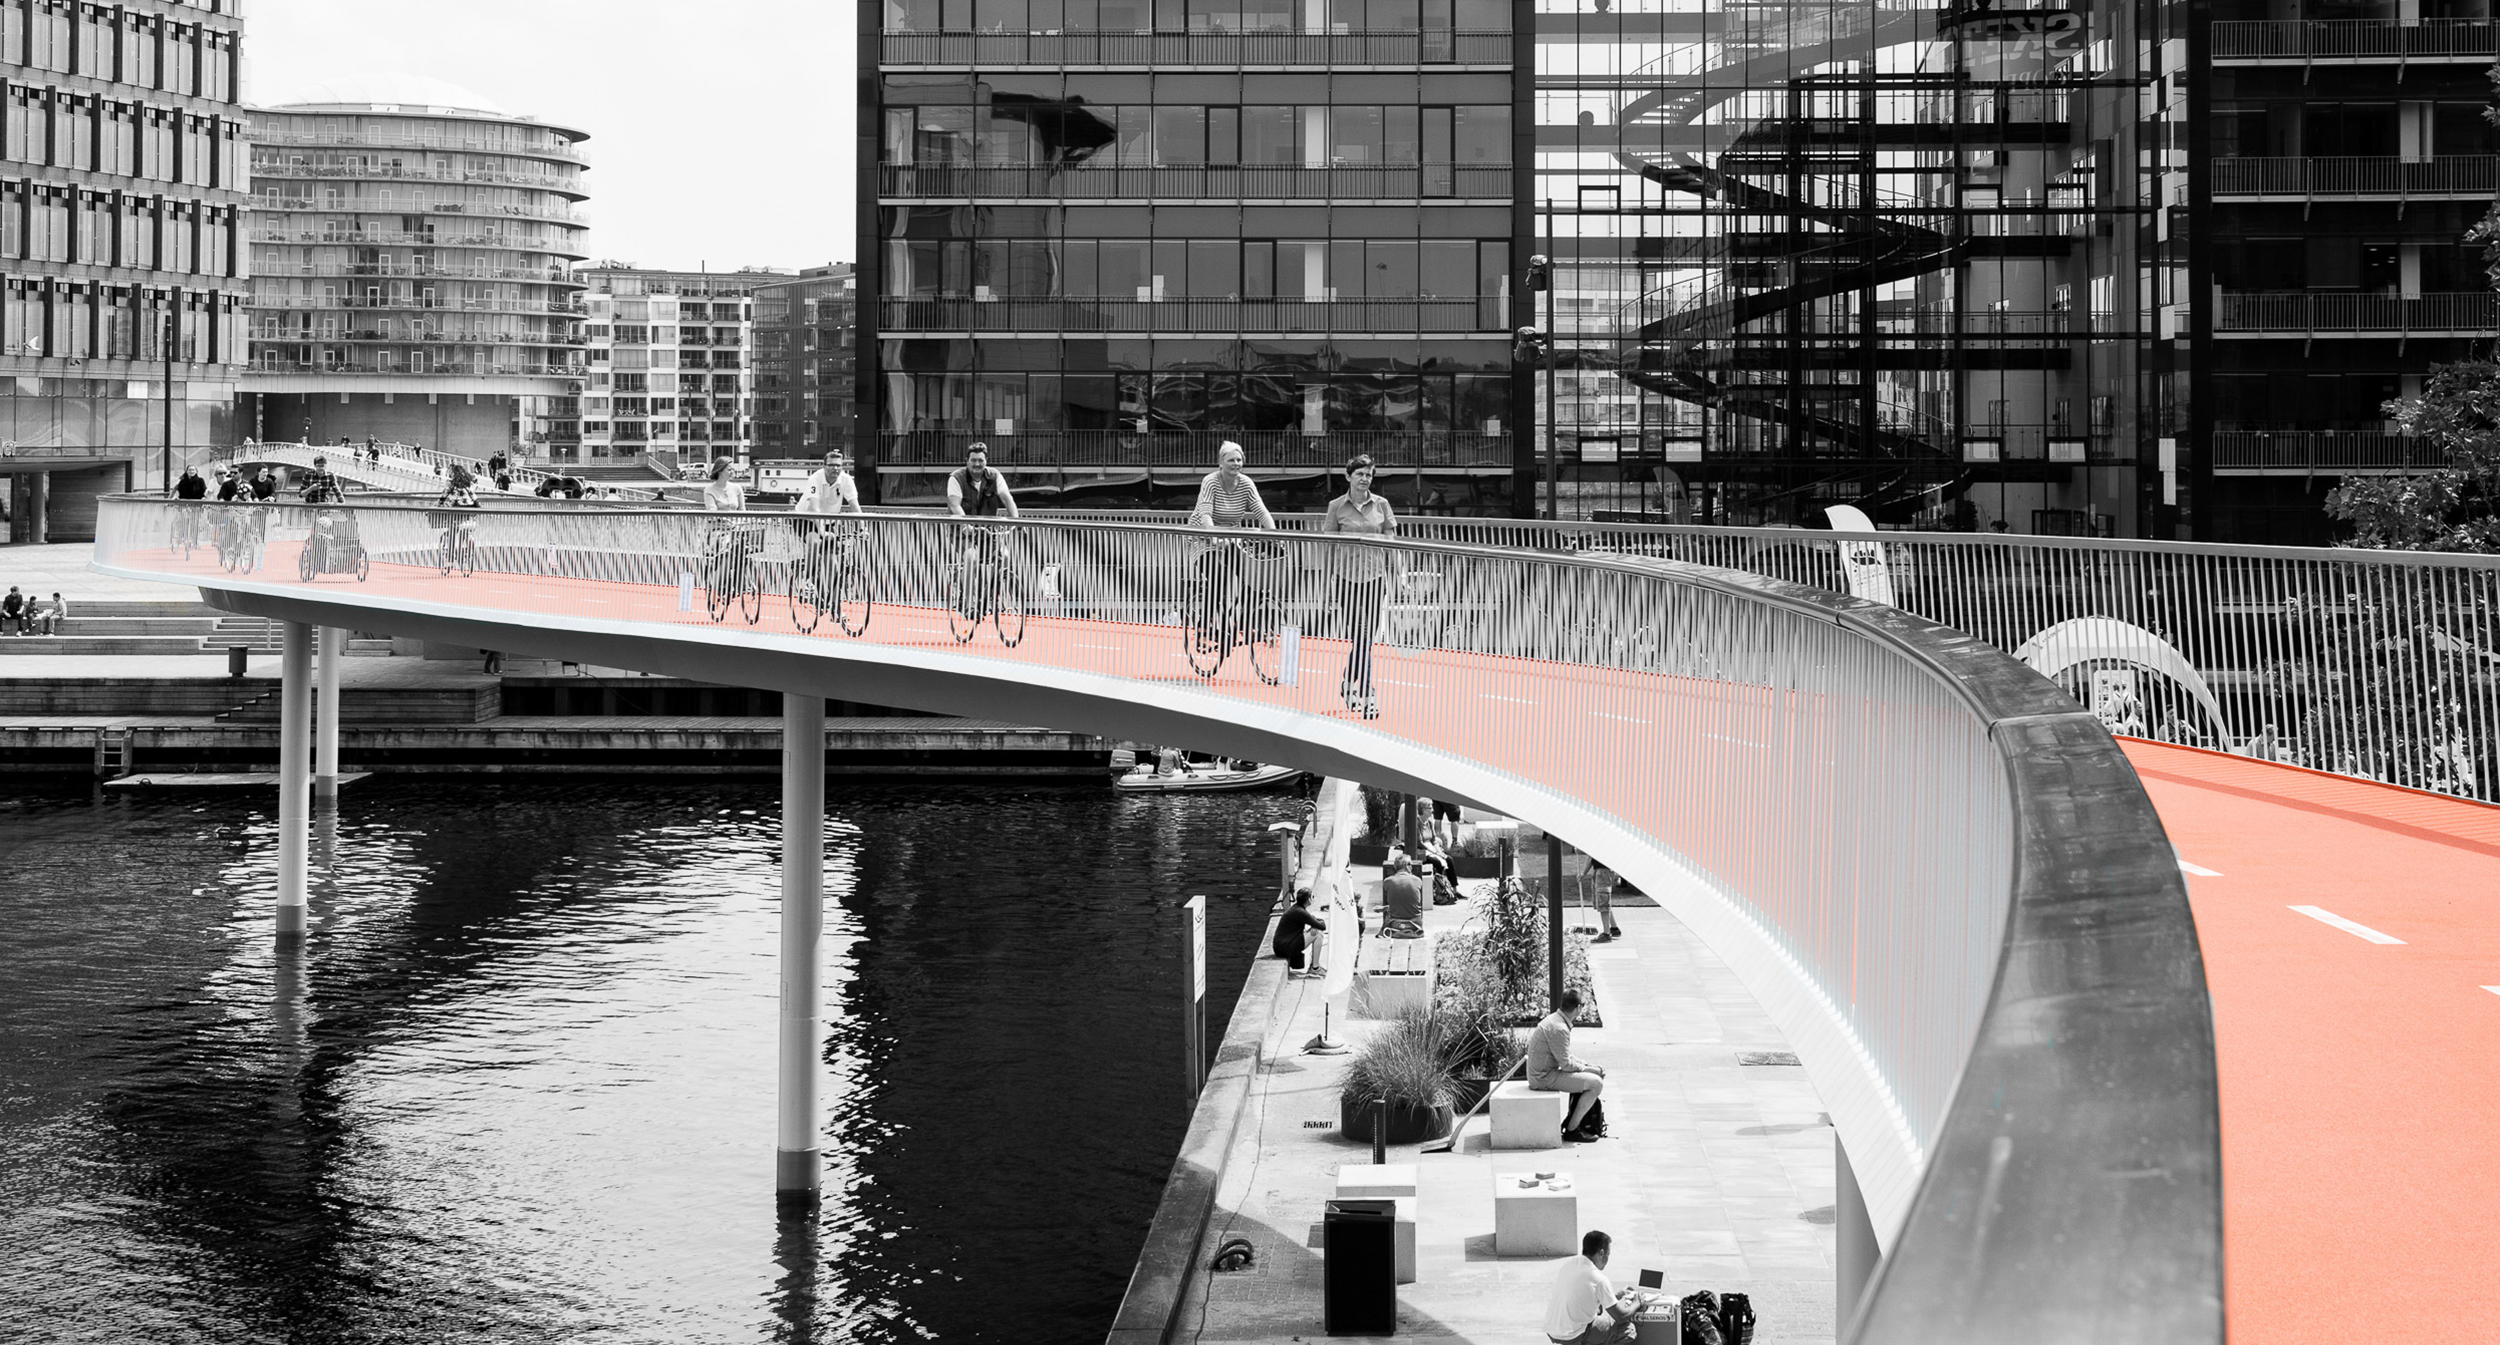 """A+ Awards, Highways & Bridges 2015    The Bicycle Snake  received first prize at Architizer's  A+ Awards  in the """"Highways & Bridges"""" category.  ECCO Hotel and Conference Centre  was also nominated in the """"Sustainability"""" category."""